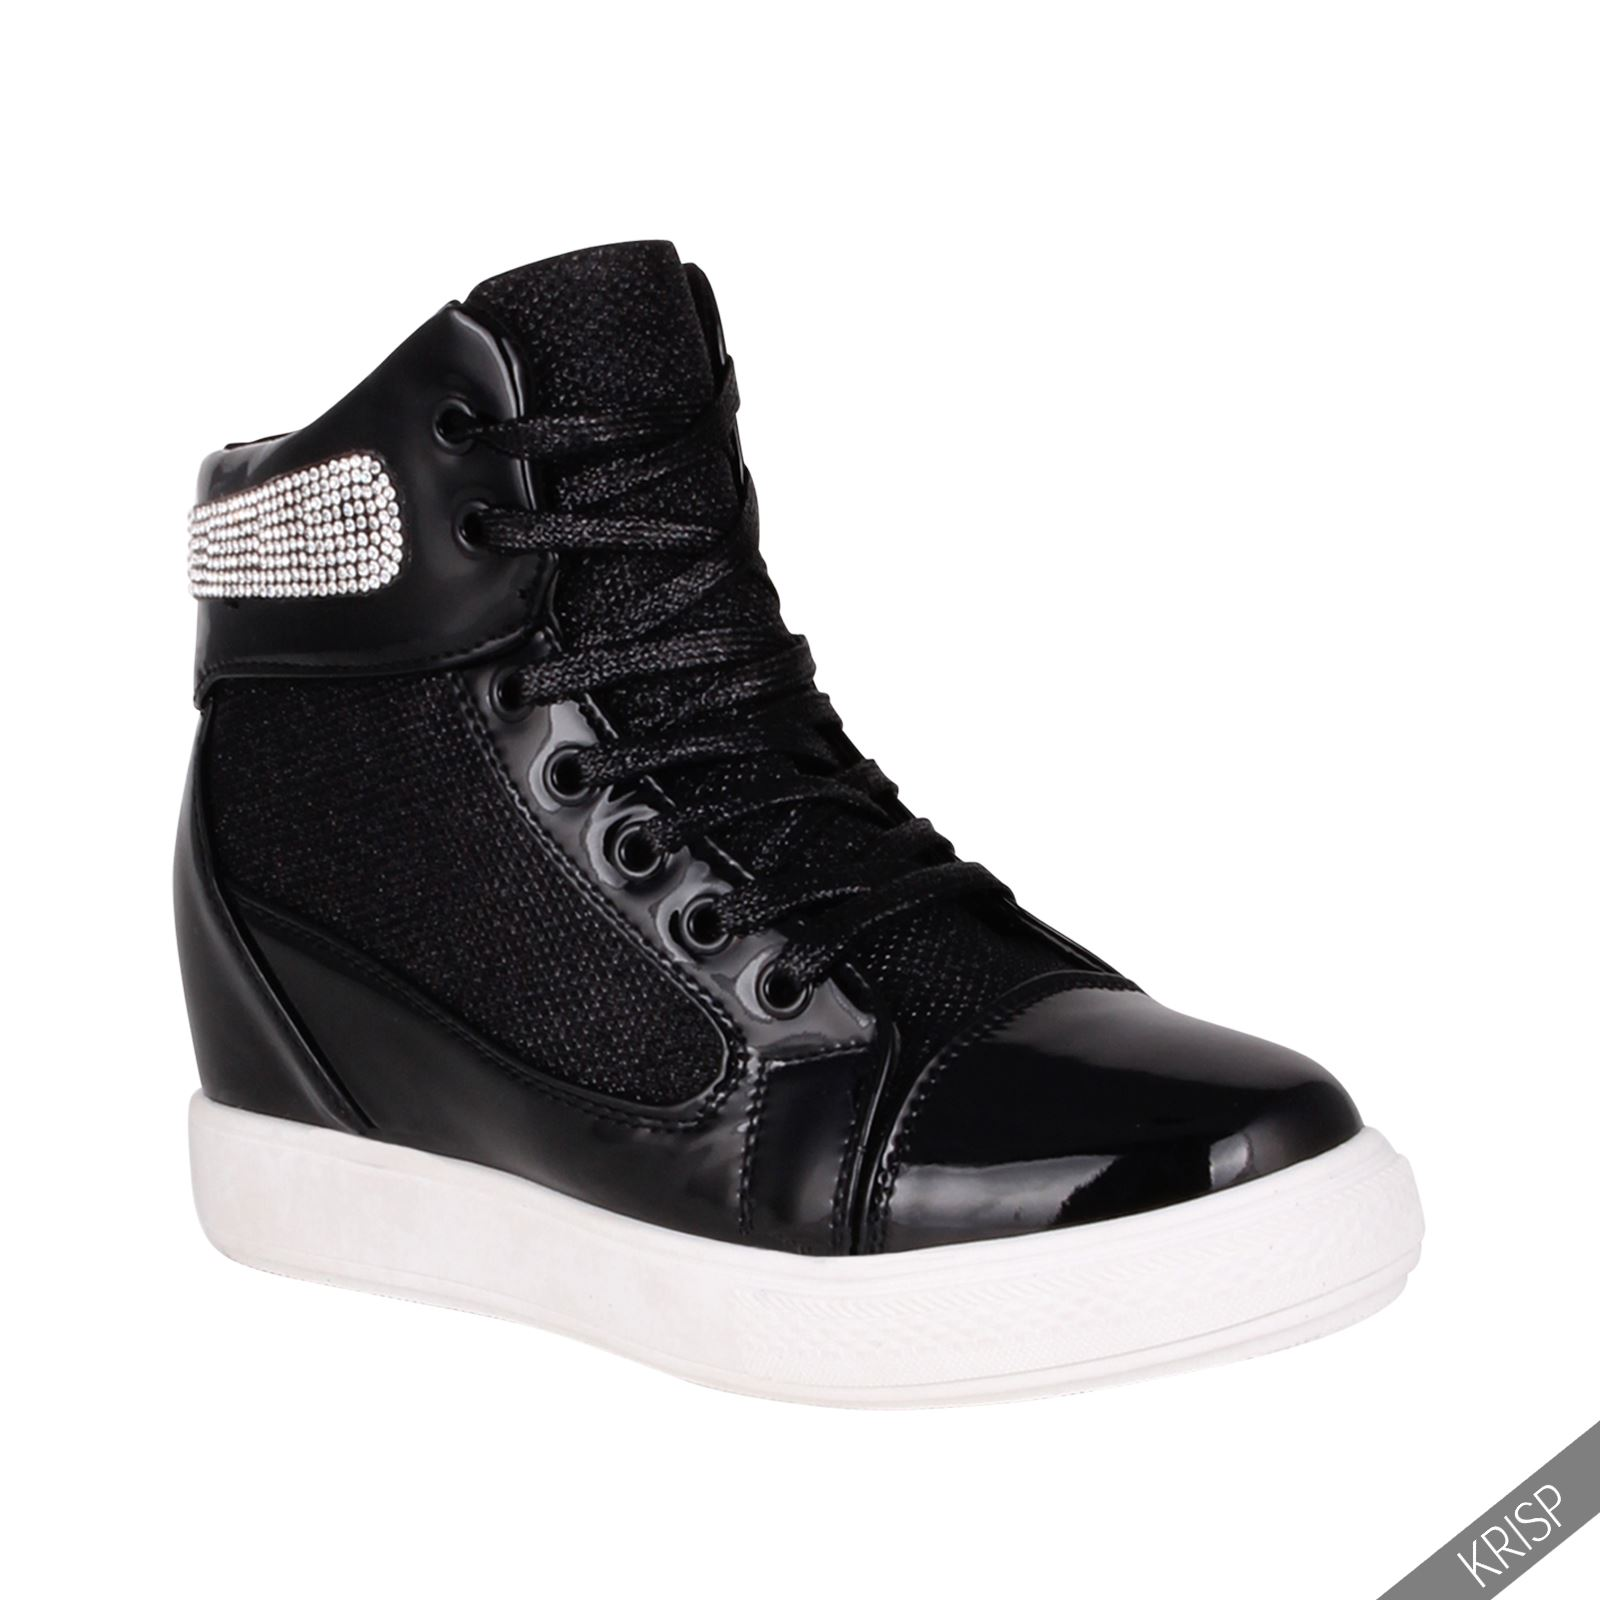 Womens Studded Concealed Wedge Trainers Sneakers High Tops ...